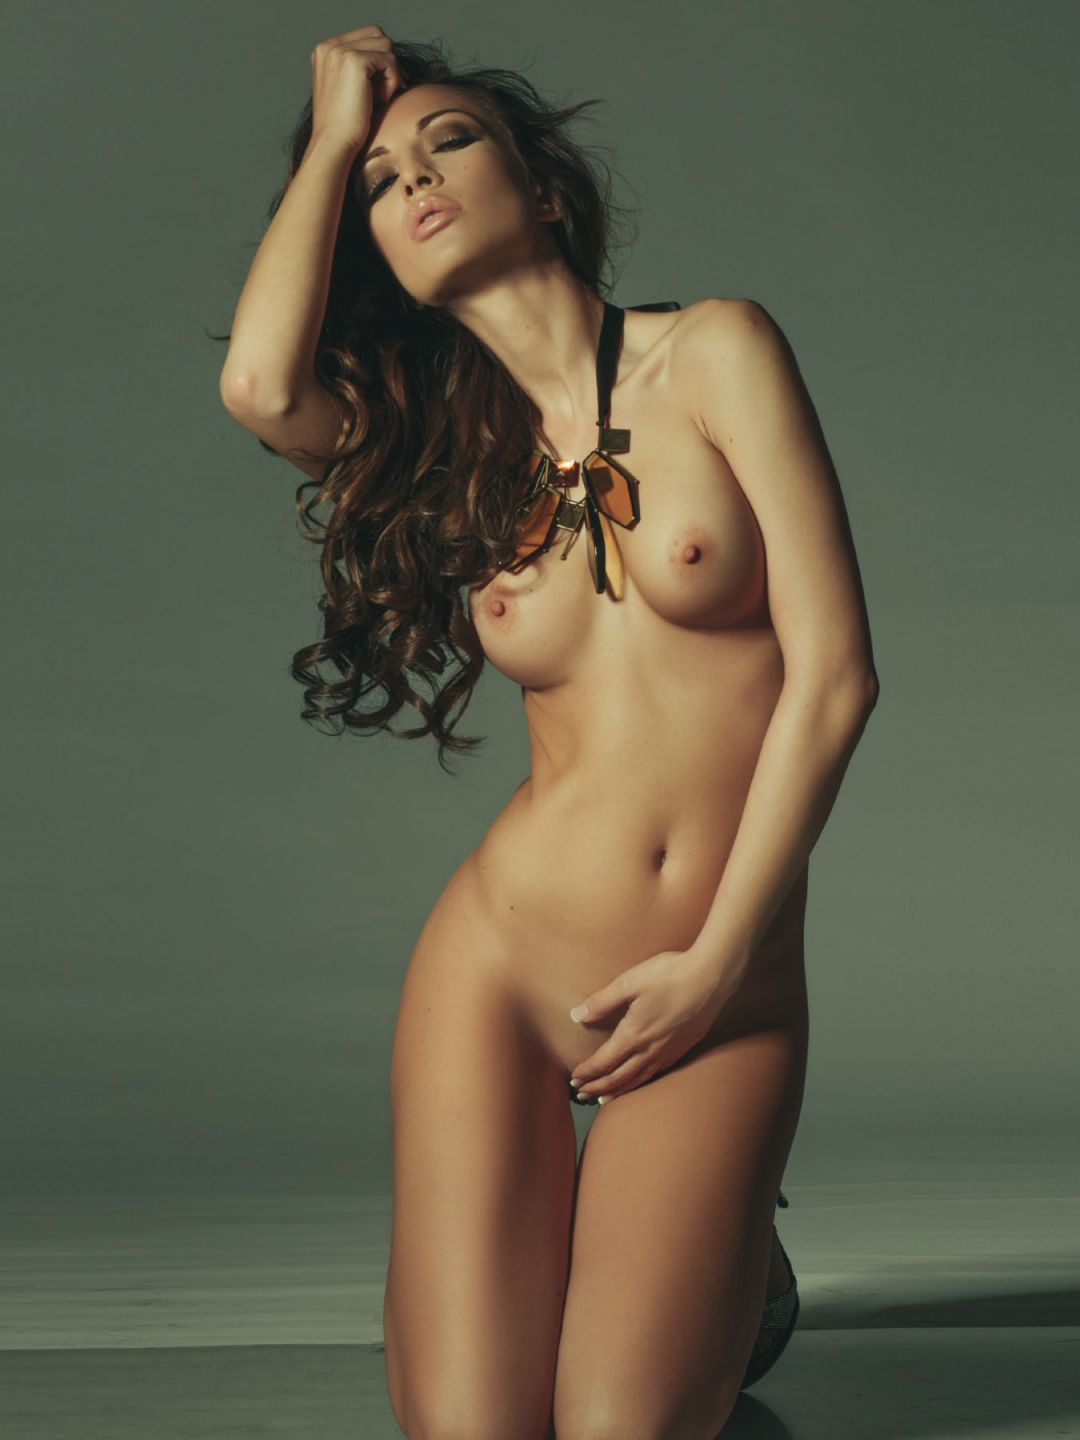 fair skinned naked girl